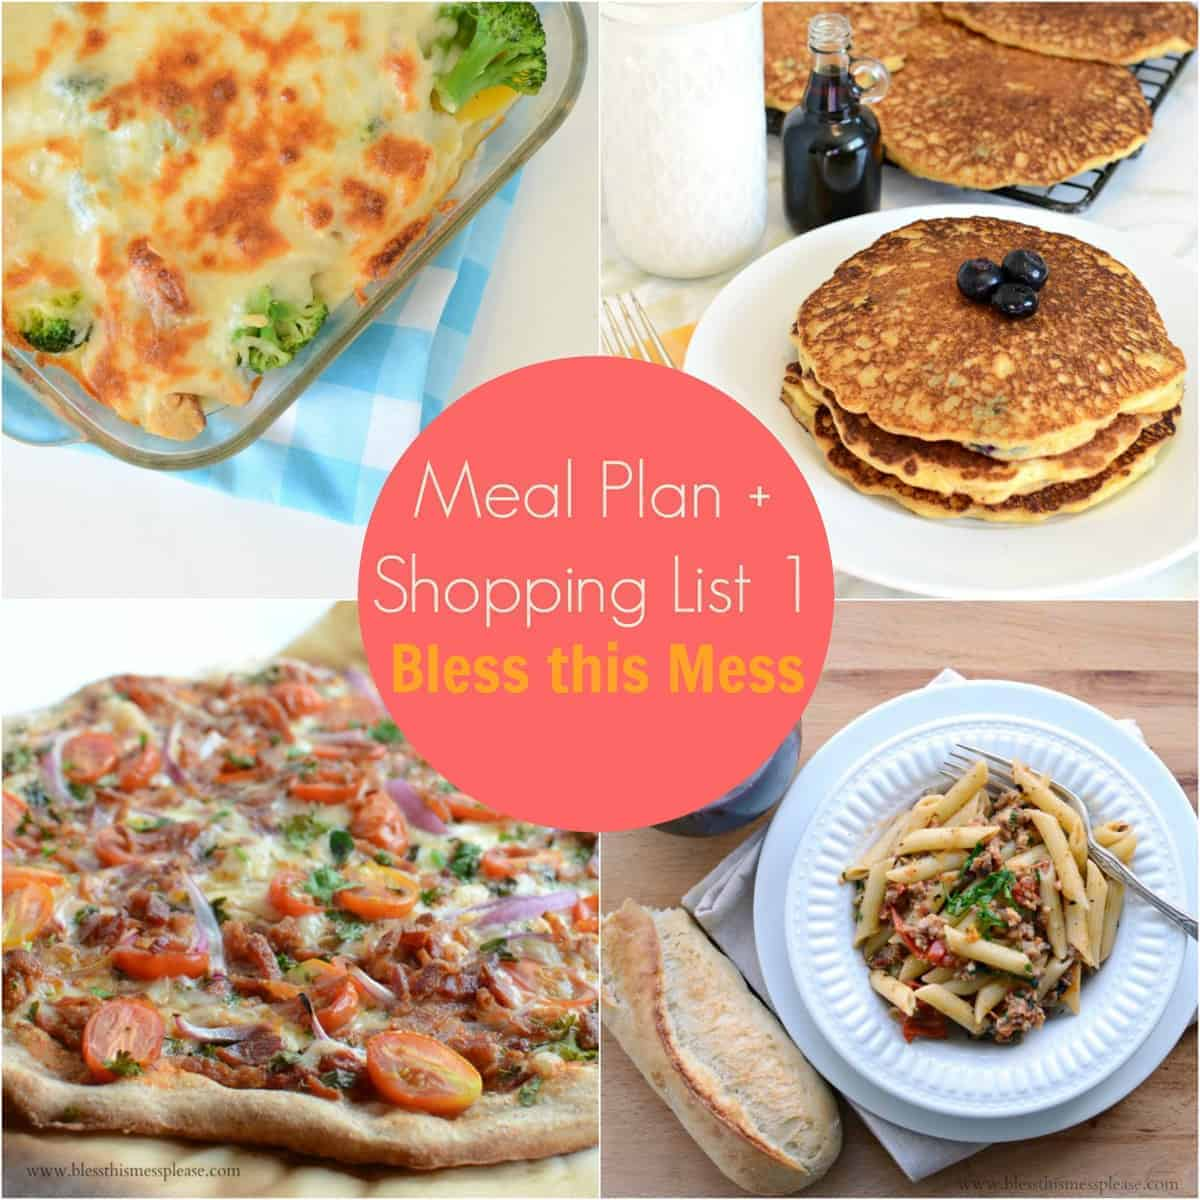 Bless this Mess Weekly Meal Plan 1 and Free Printable Shopping List